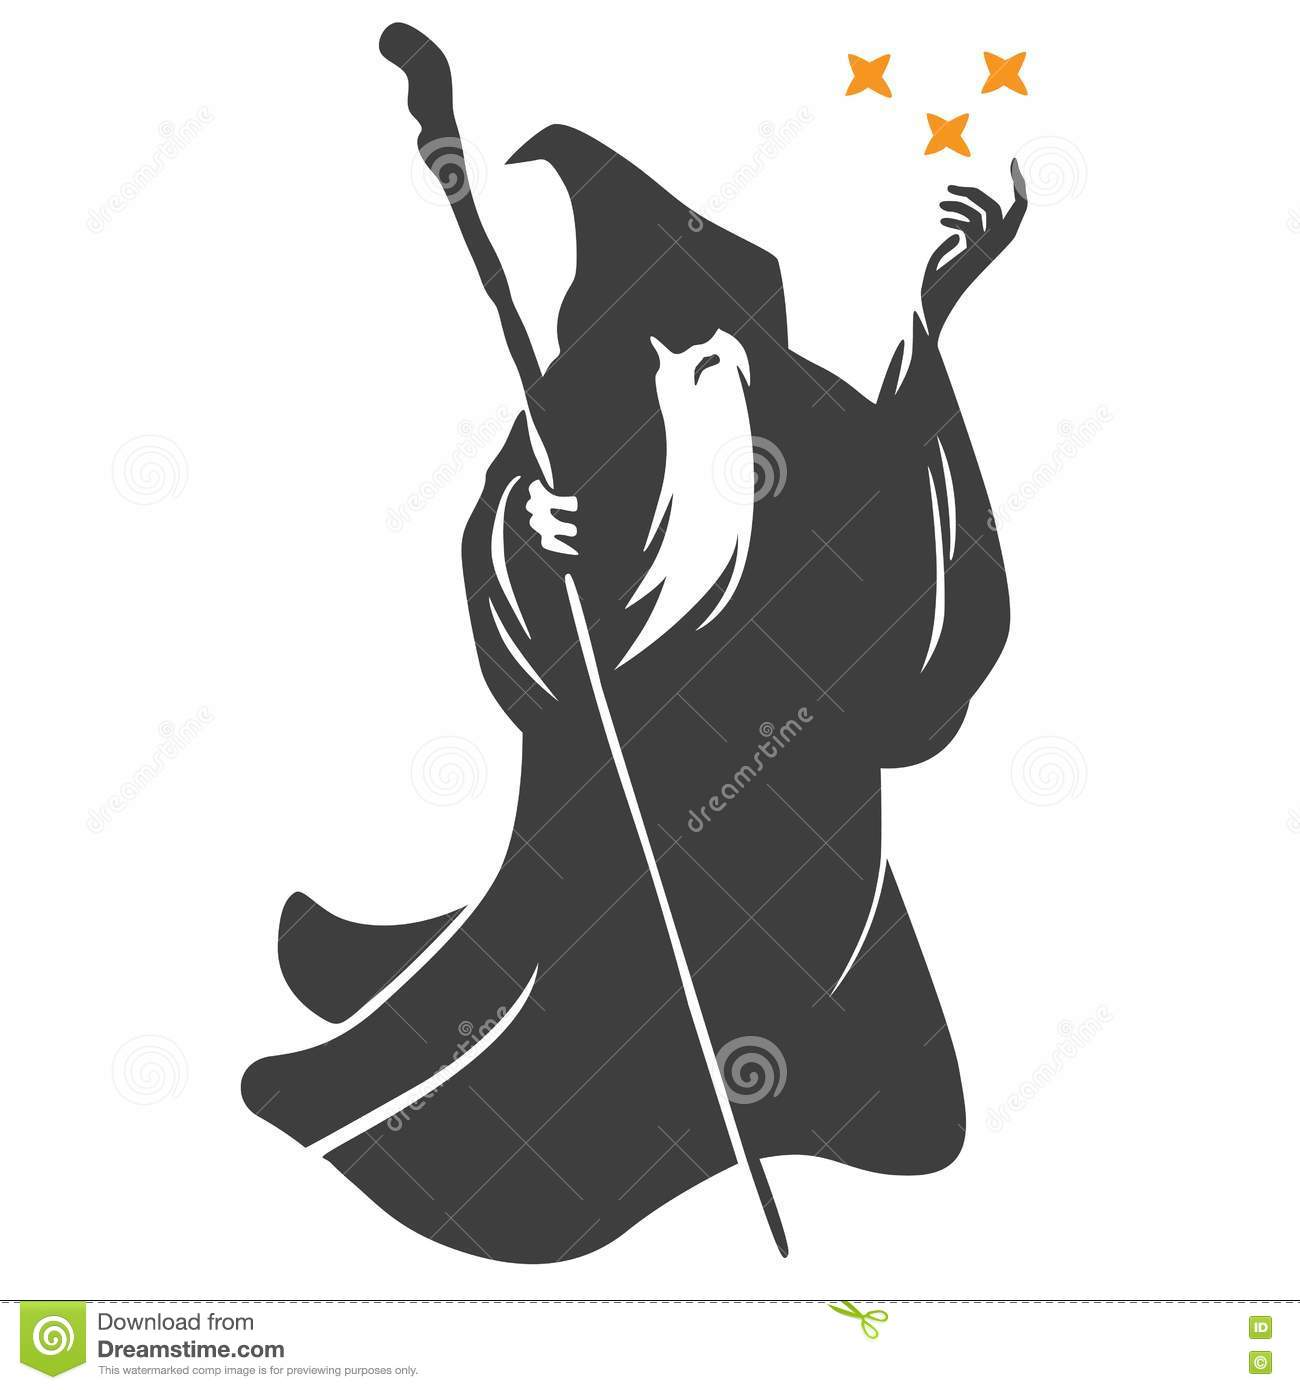 Wizard Stock Illustrations 38 486 Wizard Stock Illustrations Vectors Clipart Dreamstime Animal kingdom baker collection, limited edition prints of 50. dreamstime com